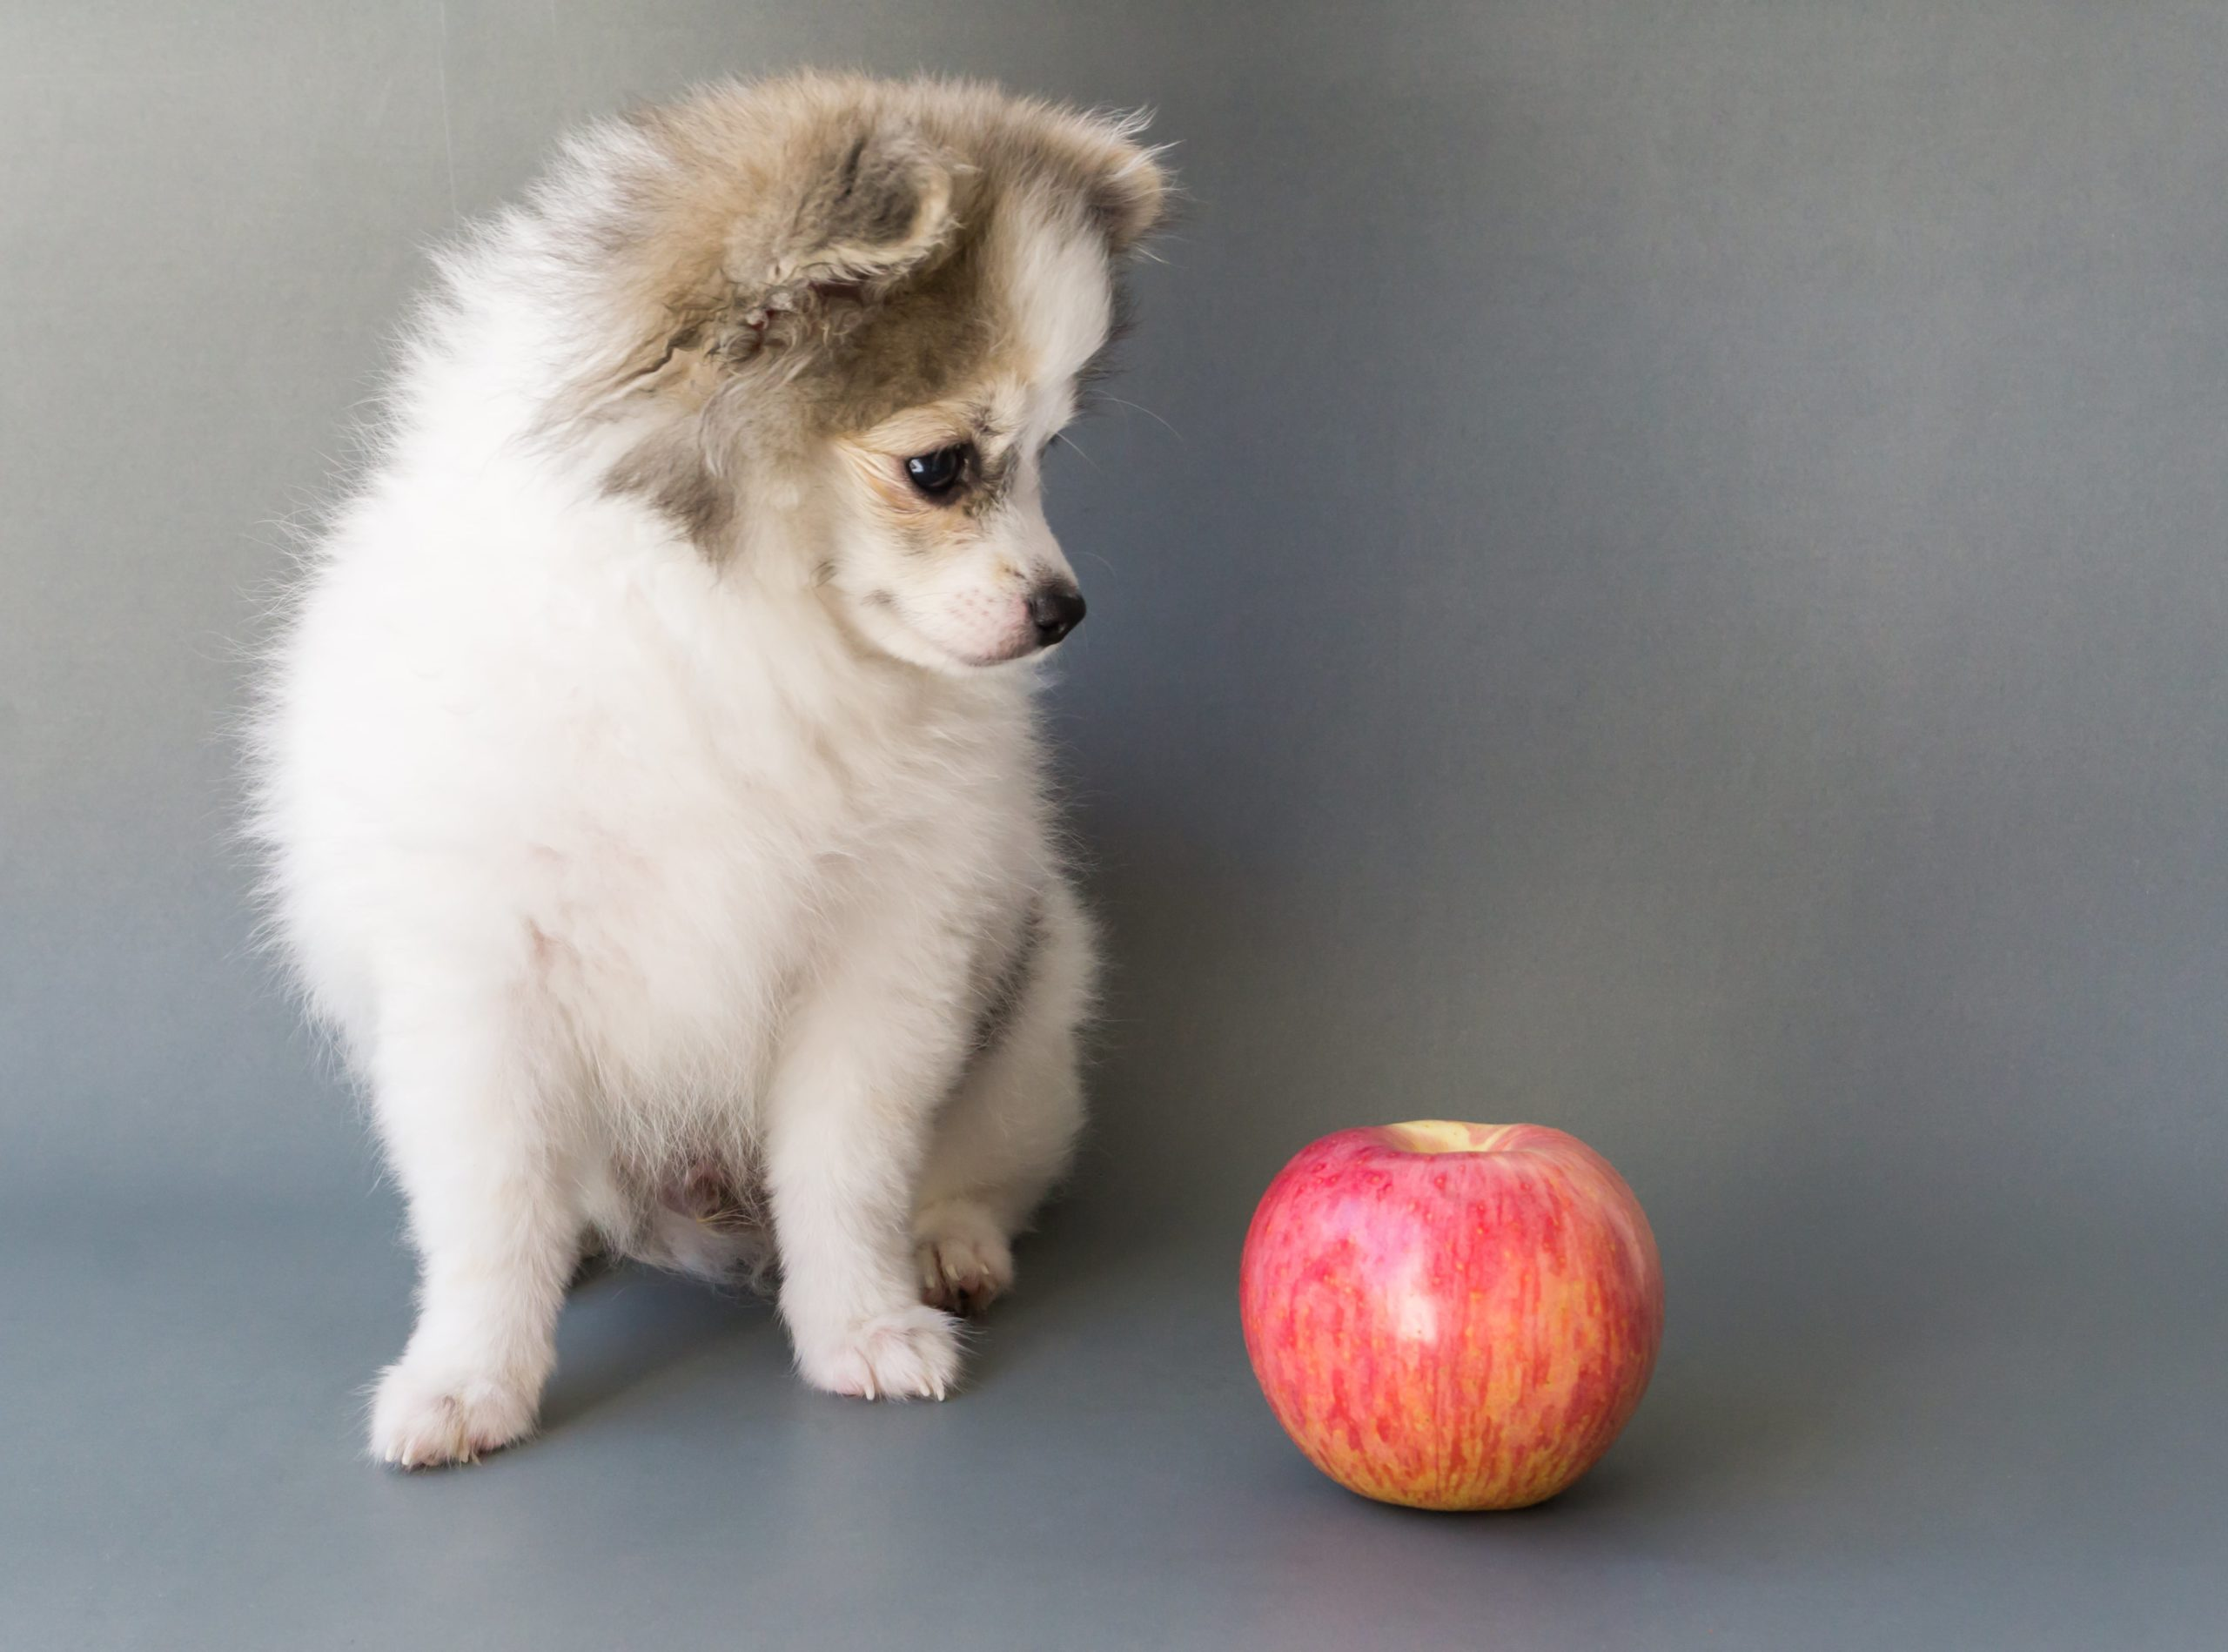 puppy looks at red apple